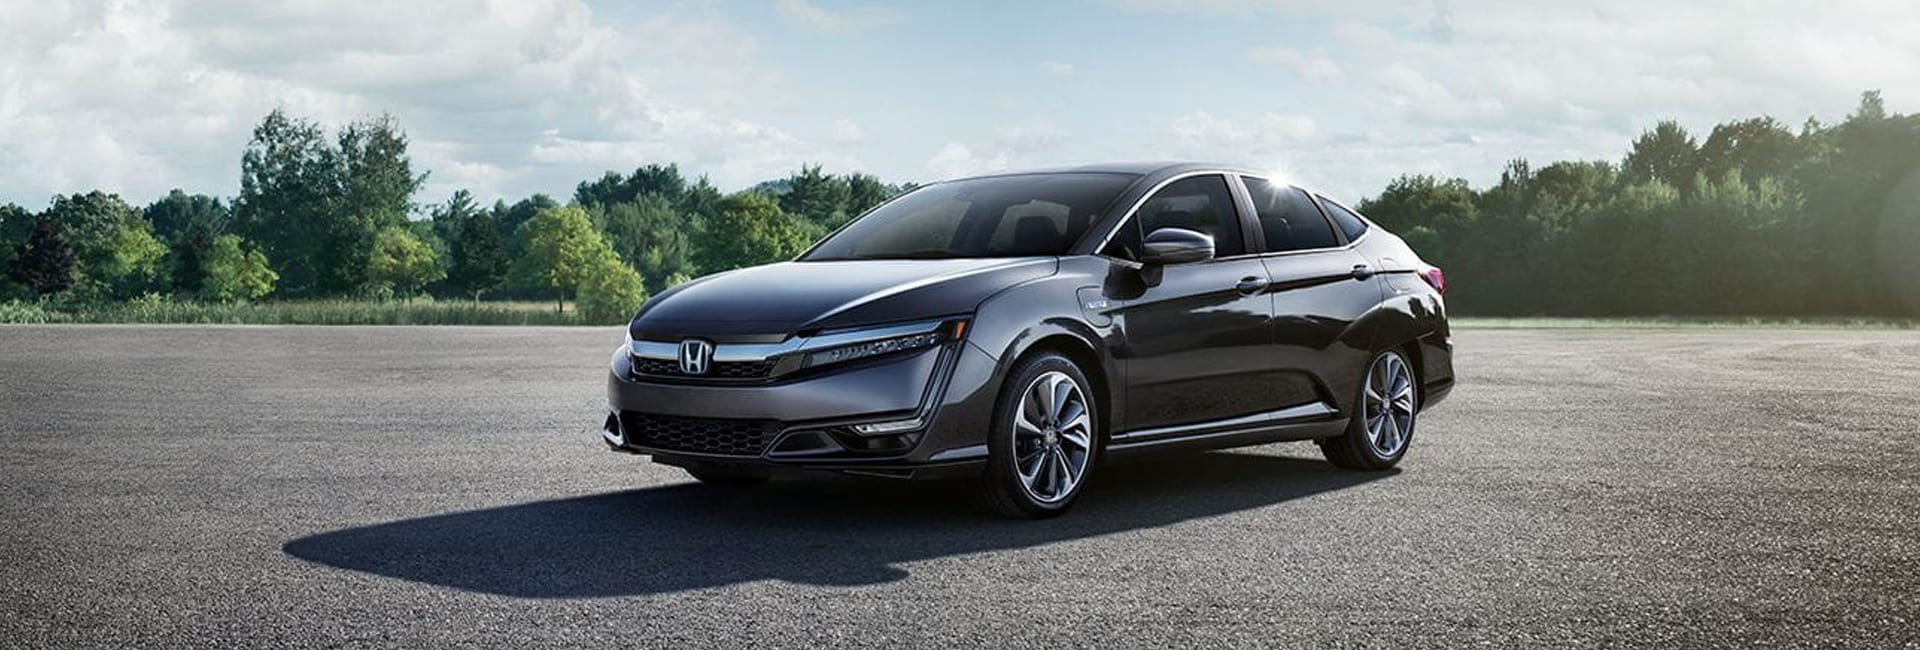 New Honda Clarity Plug-In Hybrid Exterior